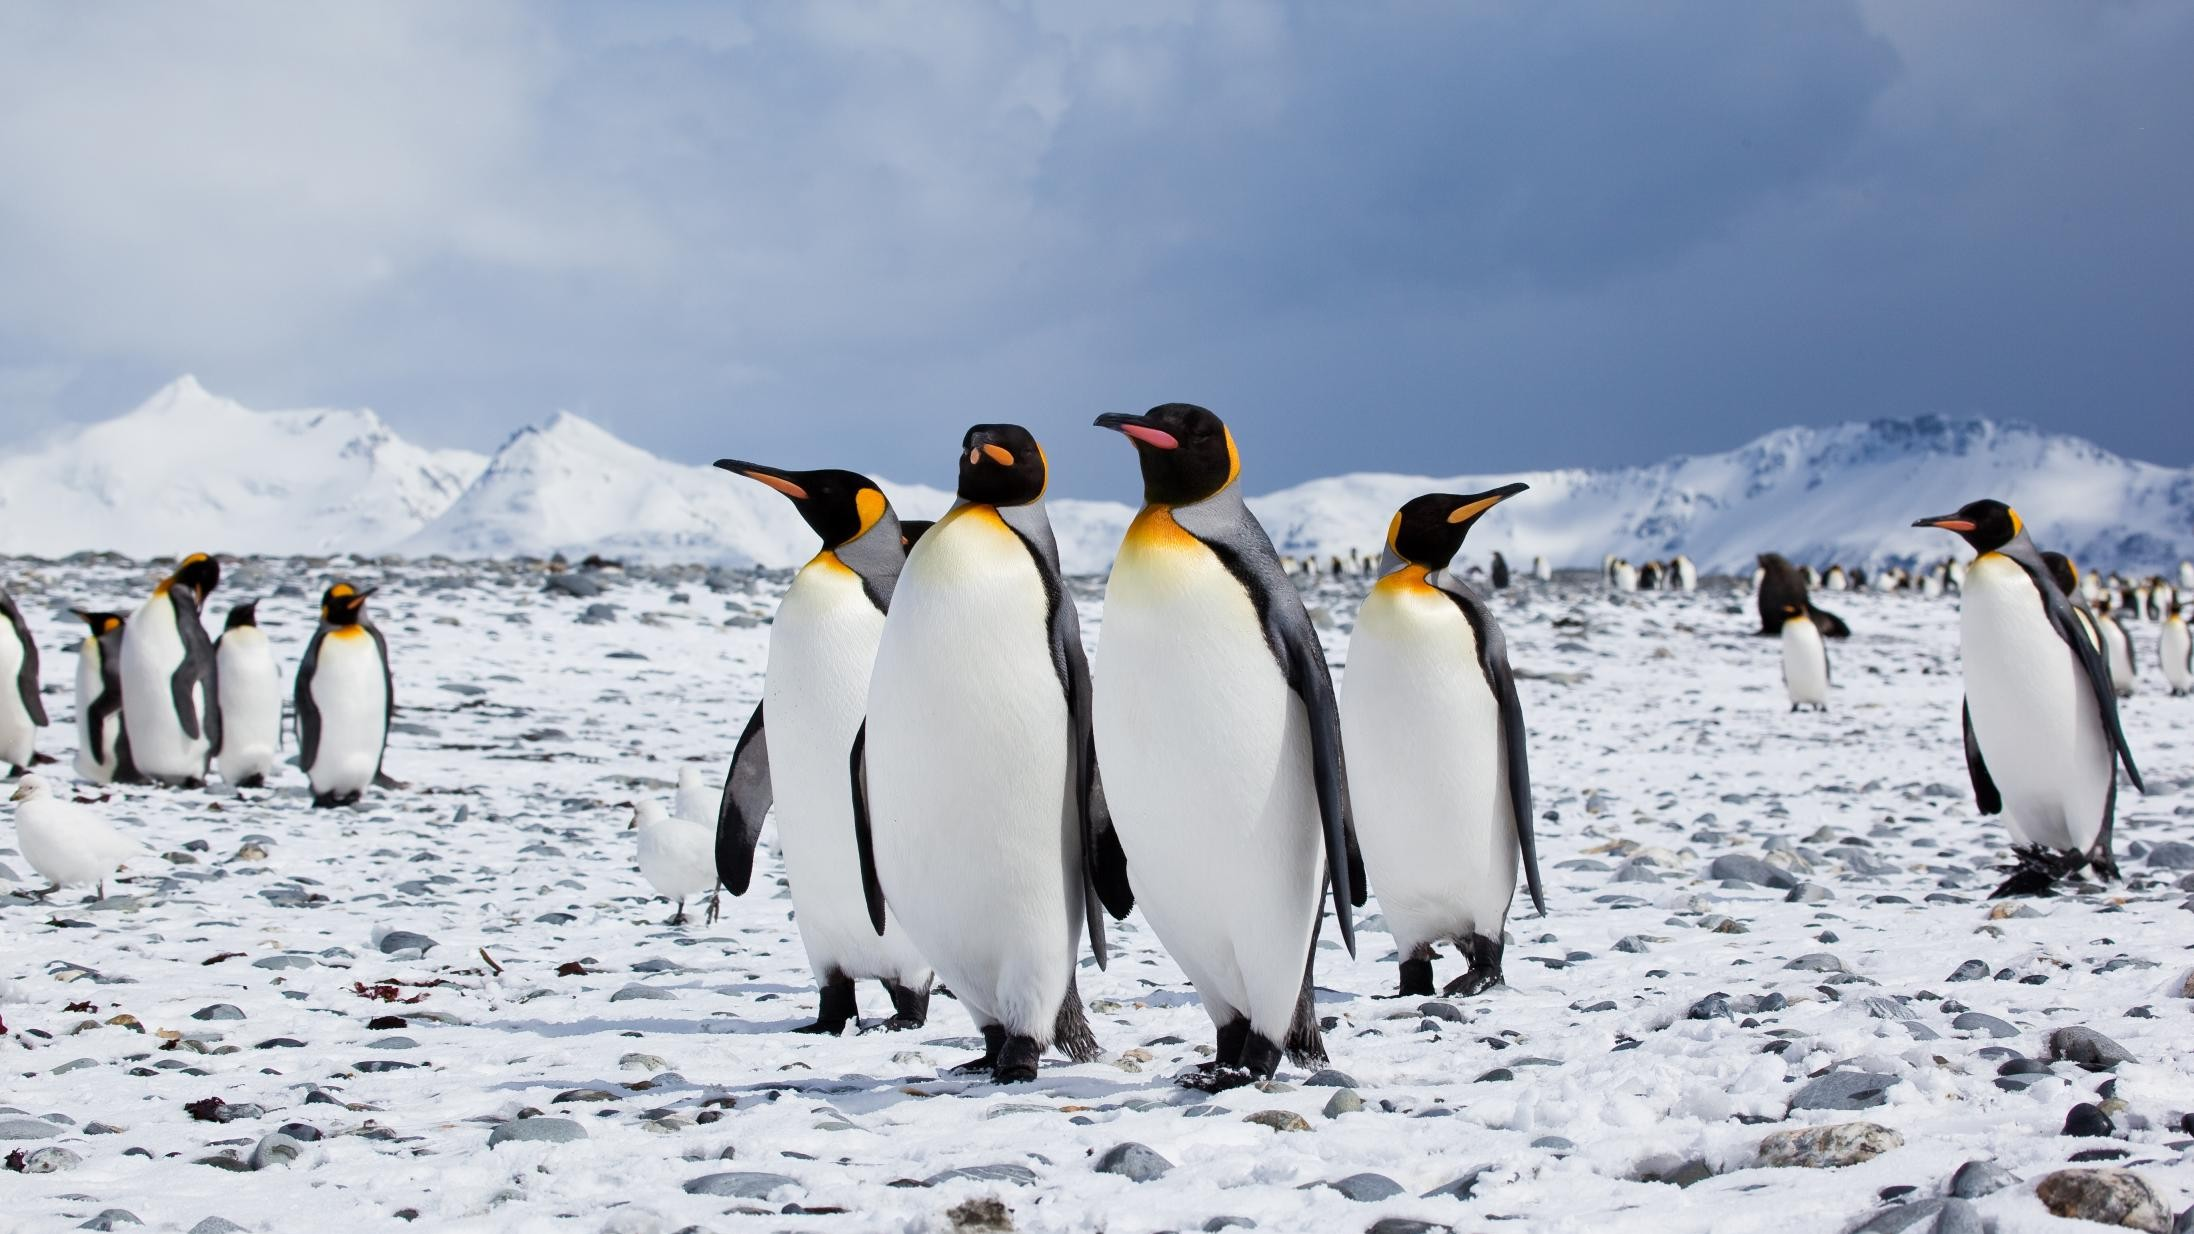 Emperor Penguins Are in Peril Worthy of Official Endangered Status